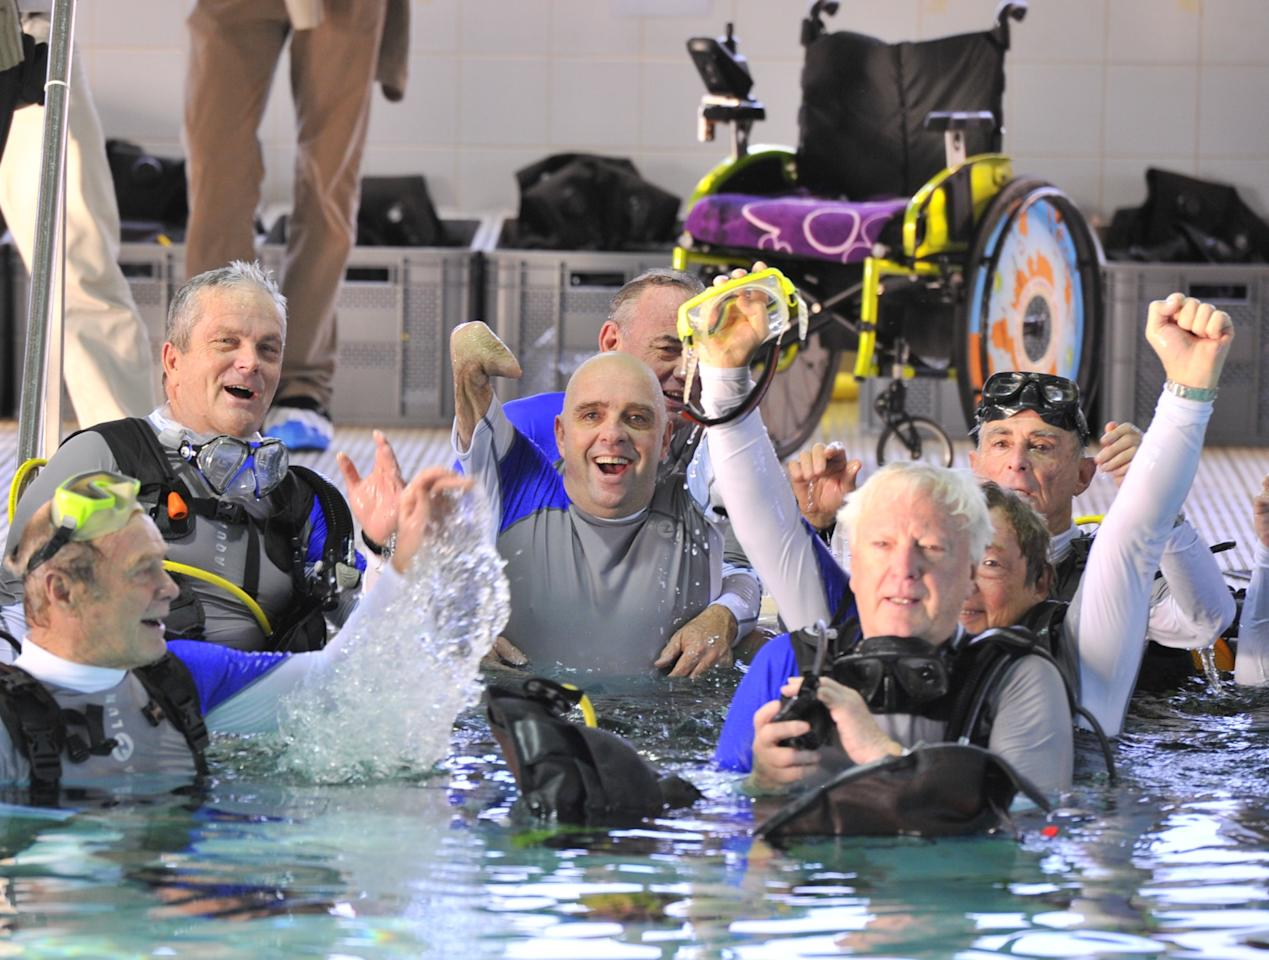 French Philippe Croizon (C), 44, celebrates on January 10, 2013 with a group of 15 Belgian divers after becoming the first quadruple amputee to dive at a depth of 33 meters in the deepest swiming pool in the world in Brussels. He used flippers attached to prosthetic limbs to dive to the bottom of the pool to set a new world record for an amputee. Croizon had all four limbs amputated in 1994 after being struck by an electric shock of more than 20,000 volts as he tried to remove a TV antenna from a roof. He has swum across the English Channel and all five intercontinental channels.  AFP PHOTO  GEORGES GOBETGEORGES GOBET/AFP/Getty Images